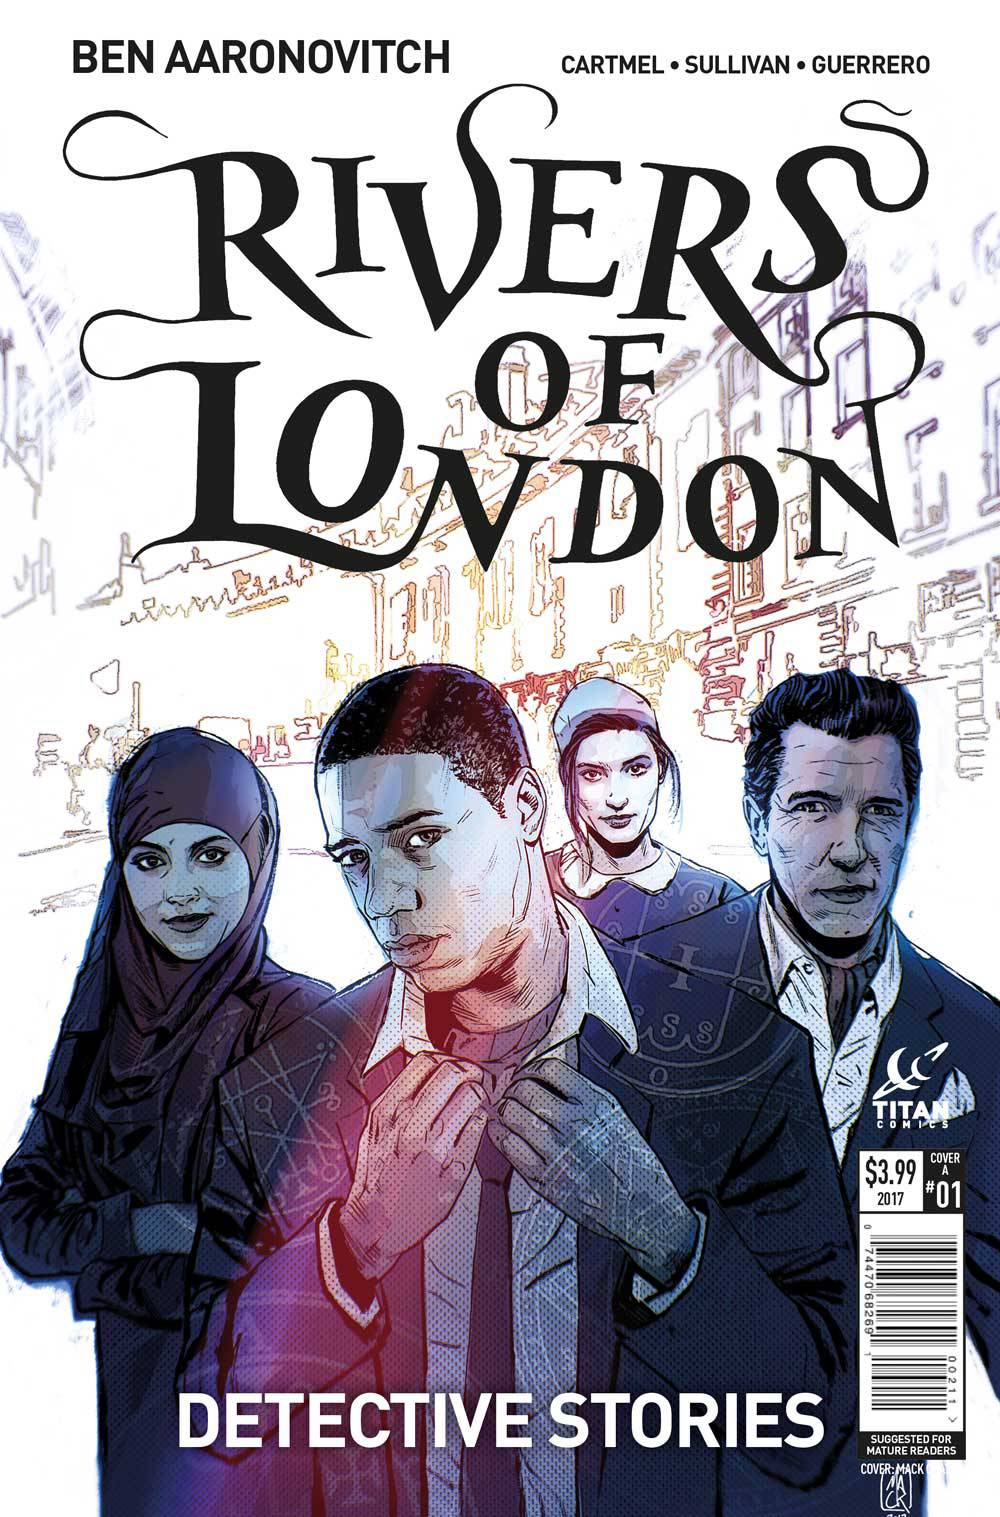 RIVERS OF LONDON DETECTIVE STORIES 1 of 4 CVR A CHATER.jpg